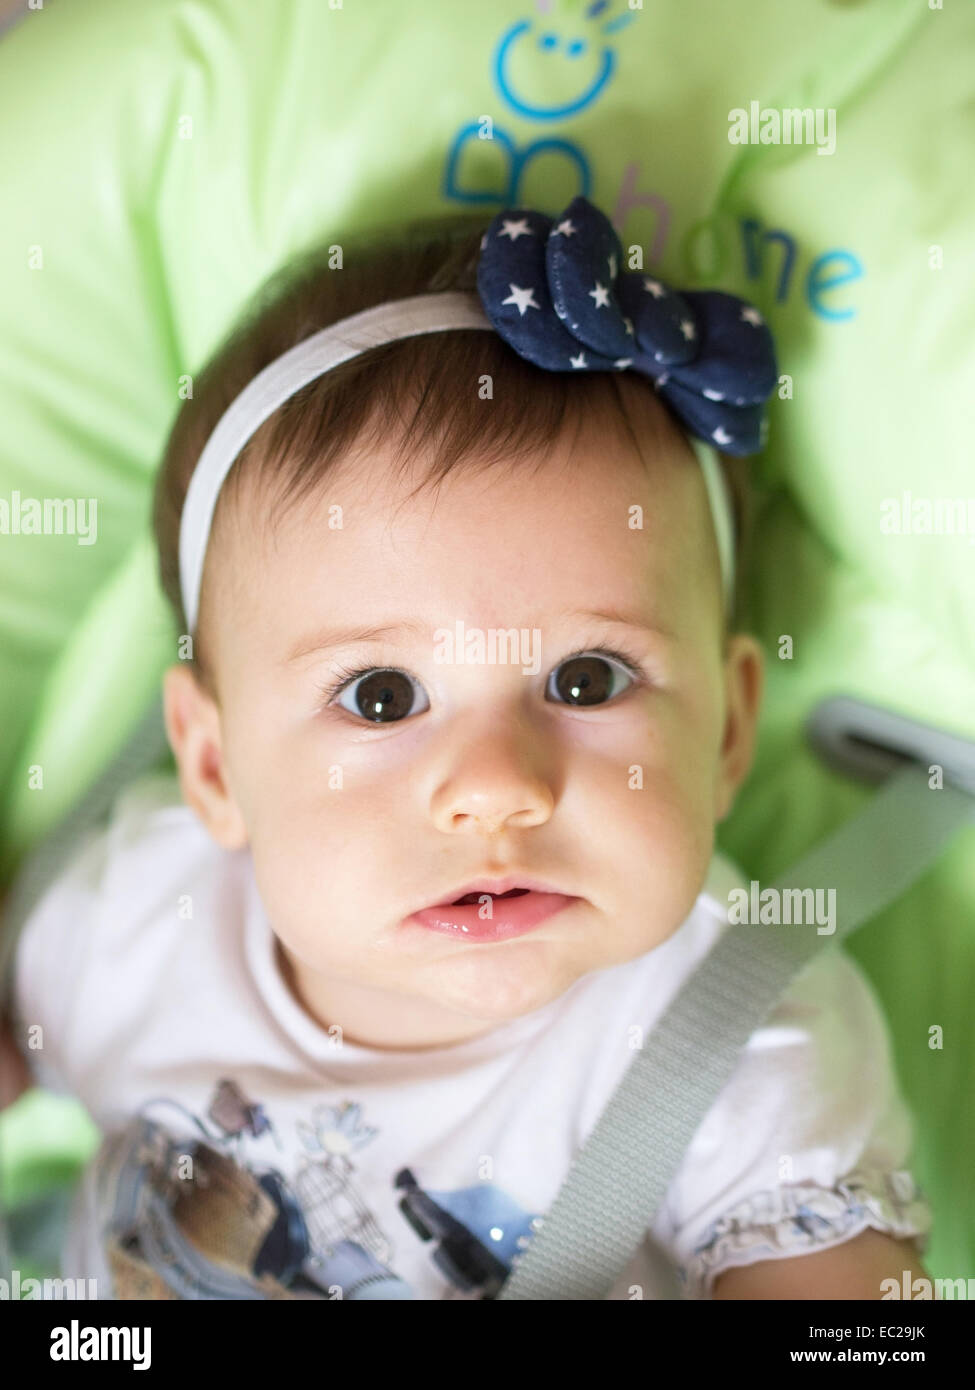 small baby girl portrait, shoot from above stock photo: 76268827 - alamy